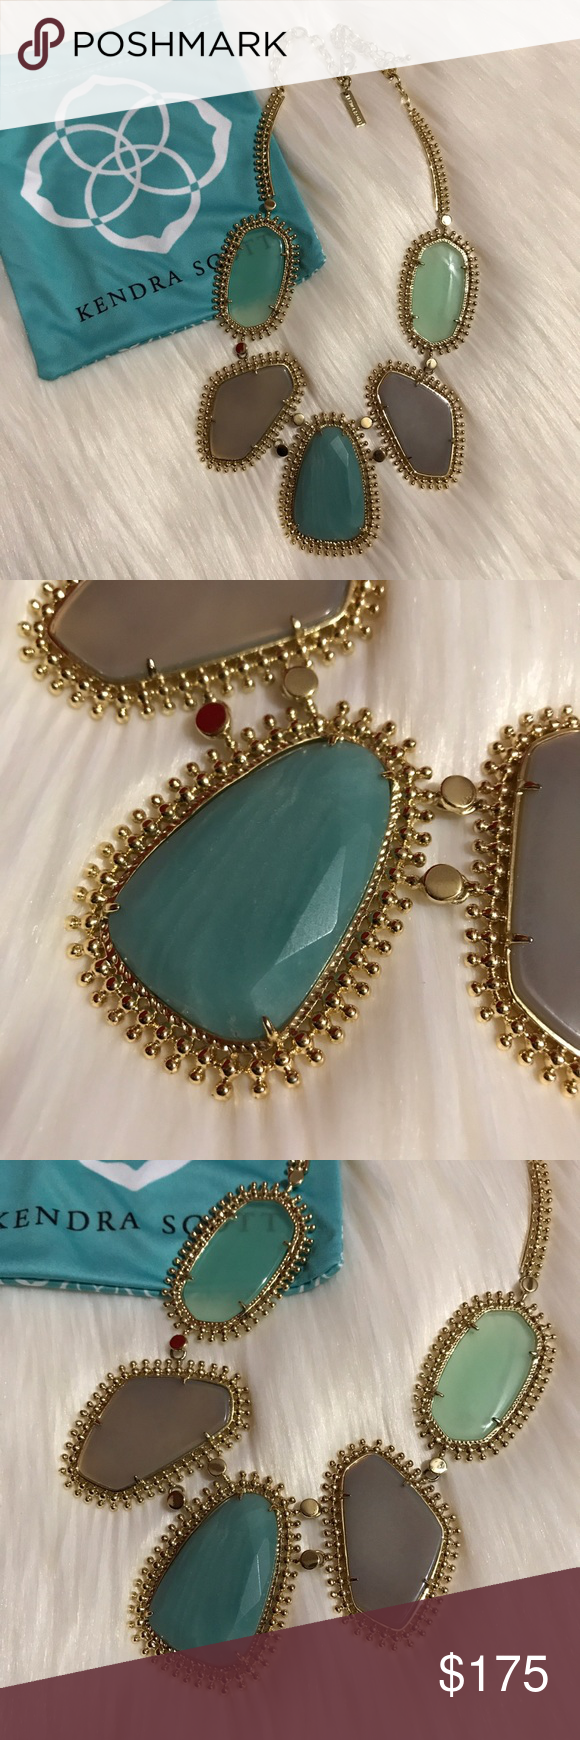 11++ Can you shower with kendra scott jewelry viral